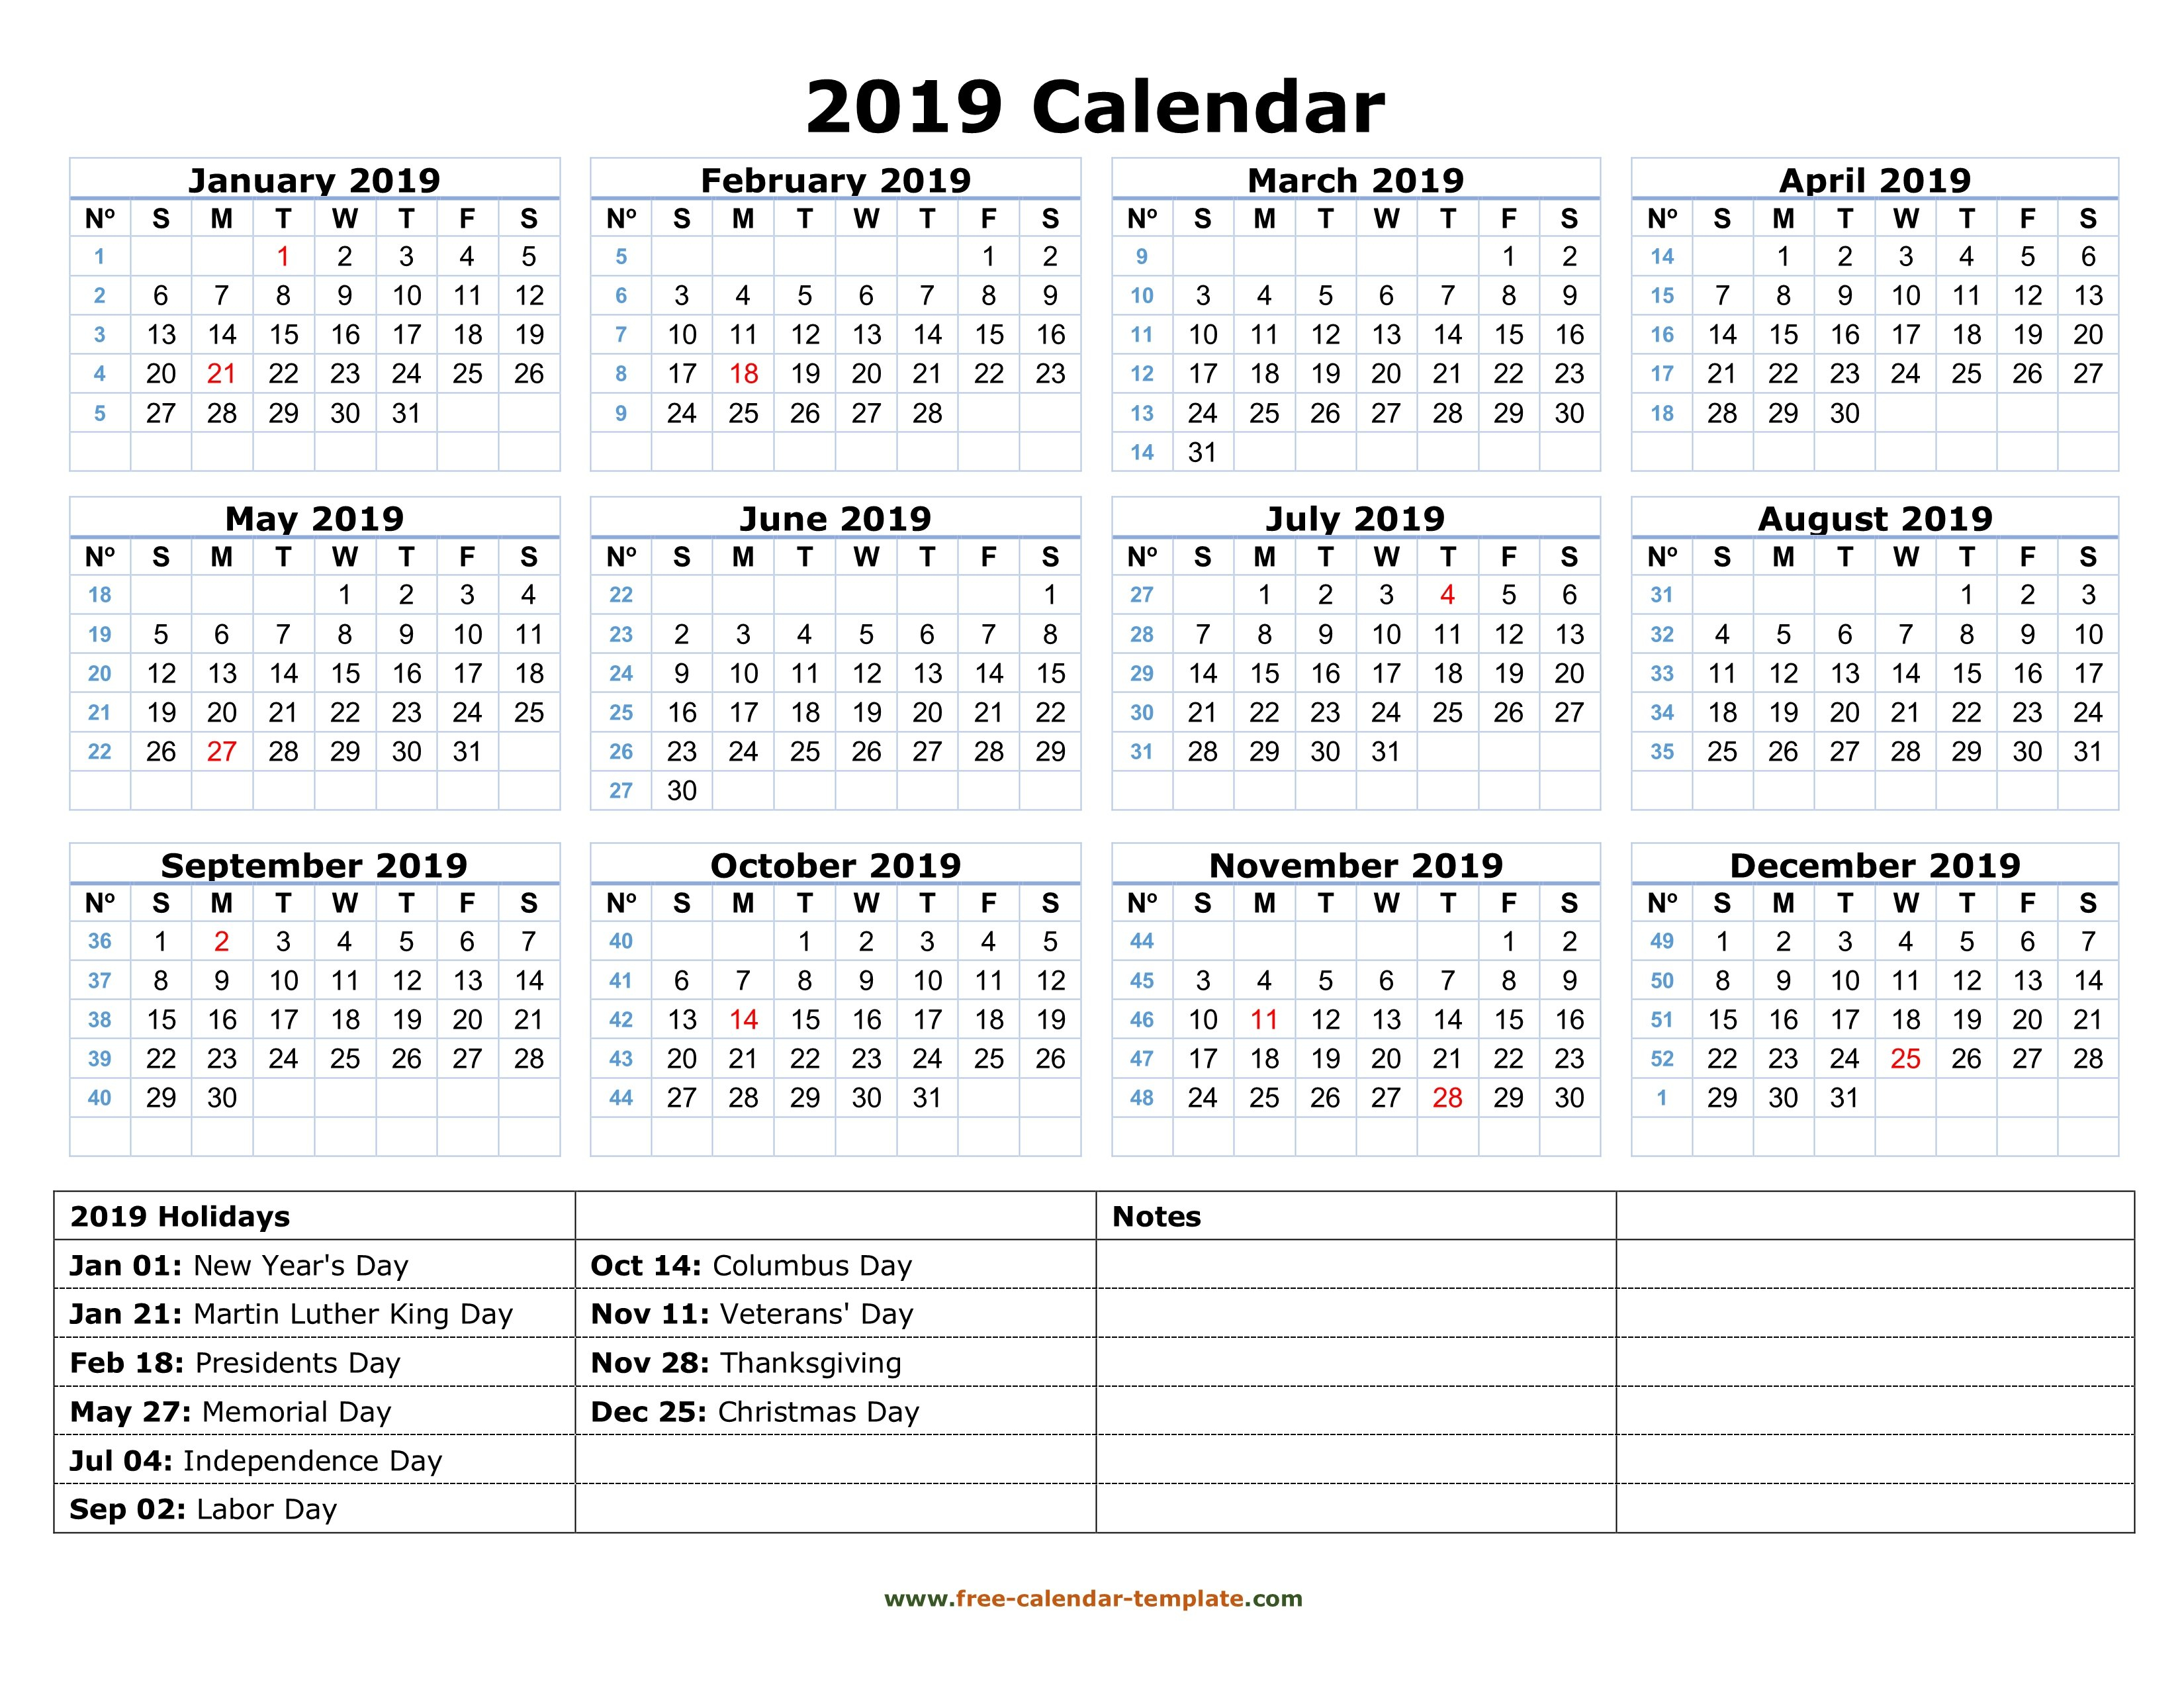 Printable Yearly Calendar 2019 With Us Holidays | Free-Calendar Calendar 2019 Year Printable